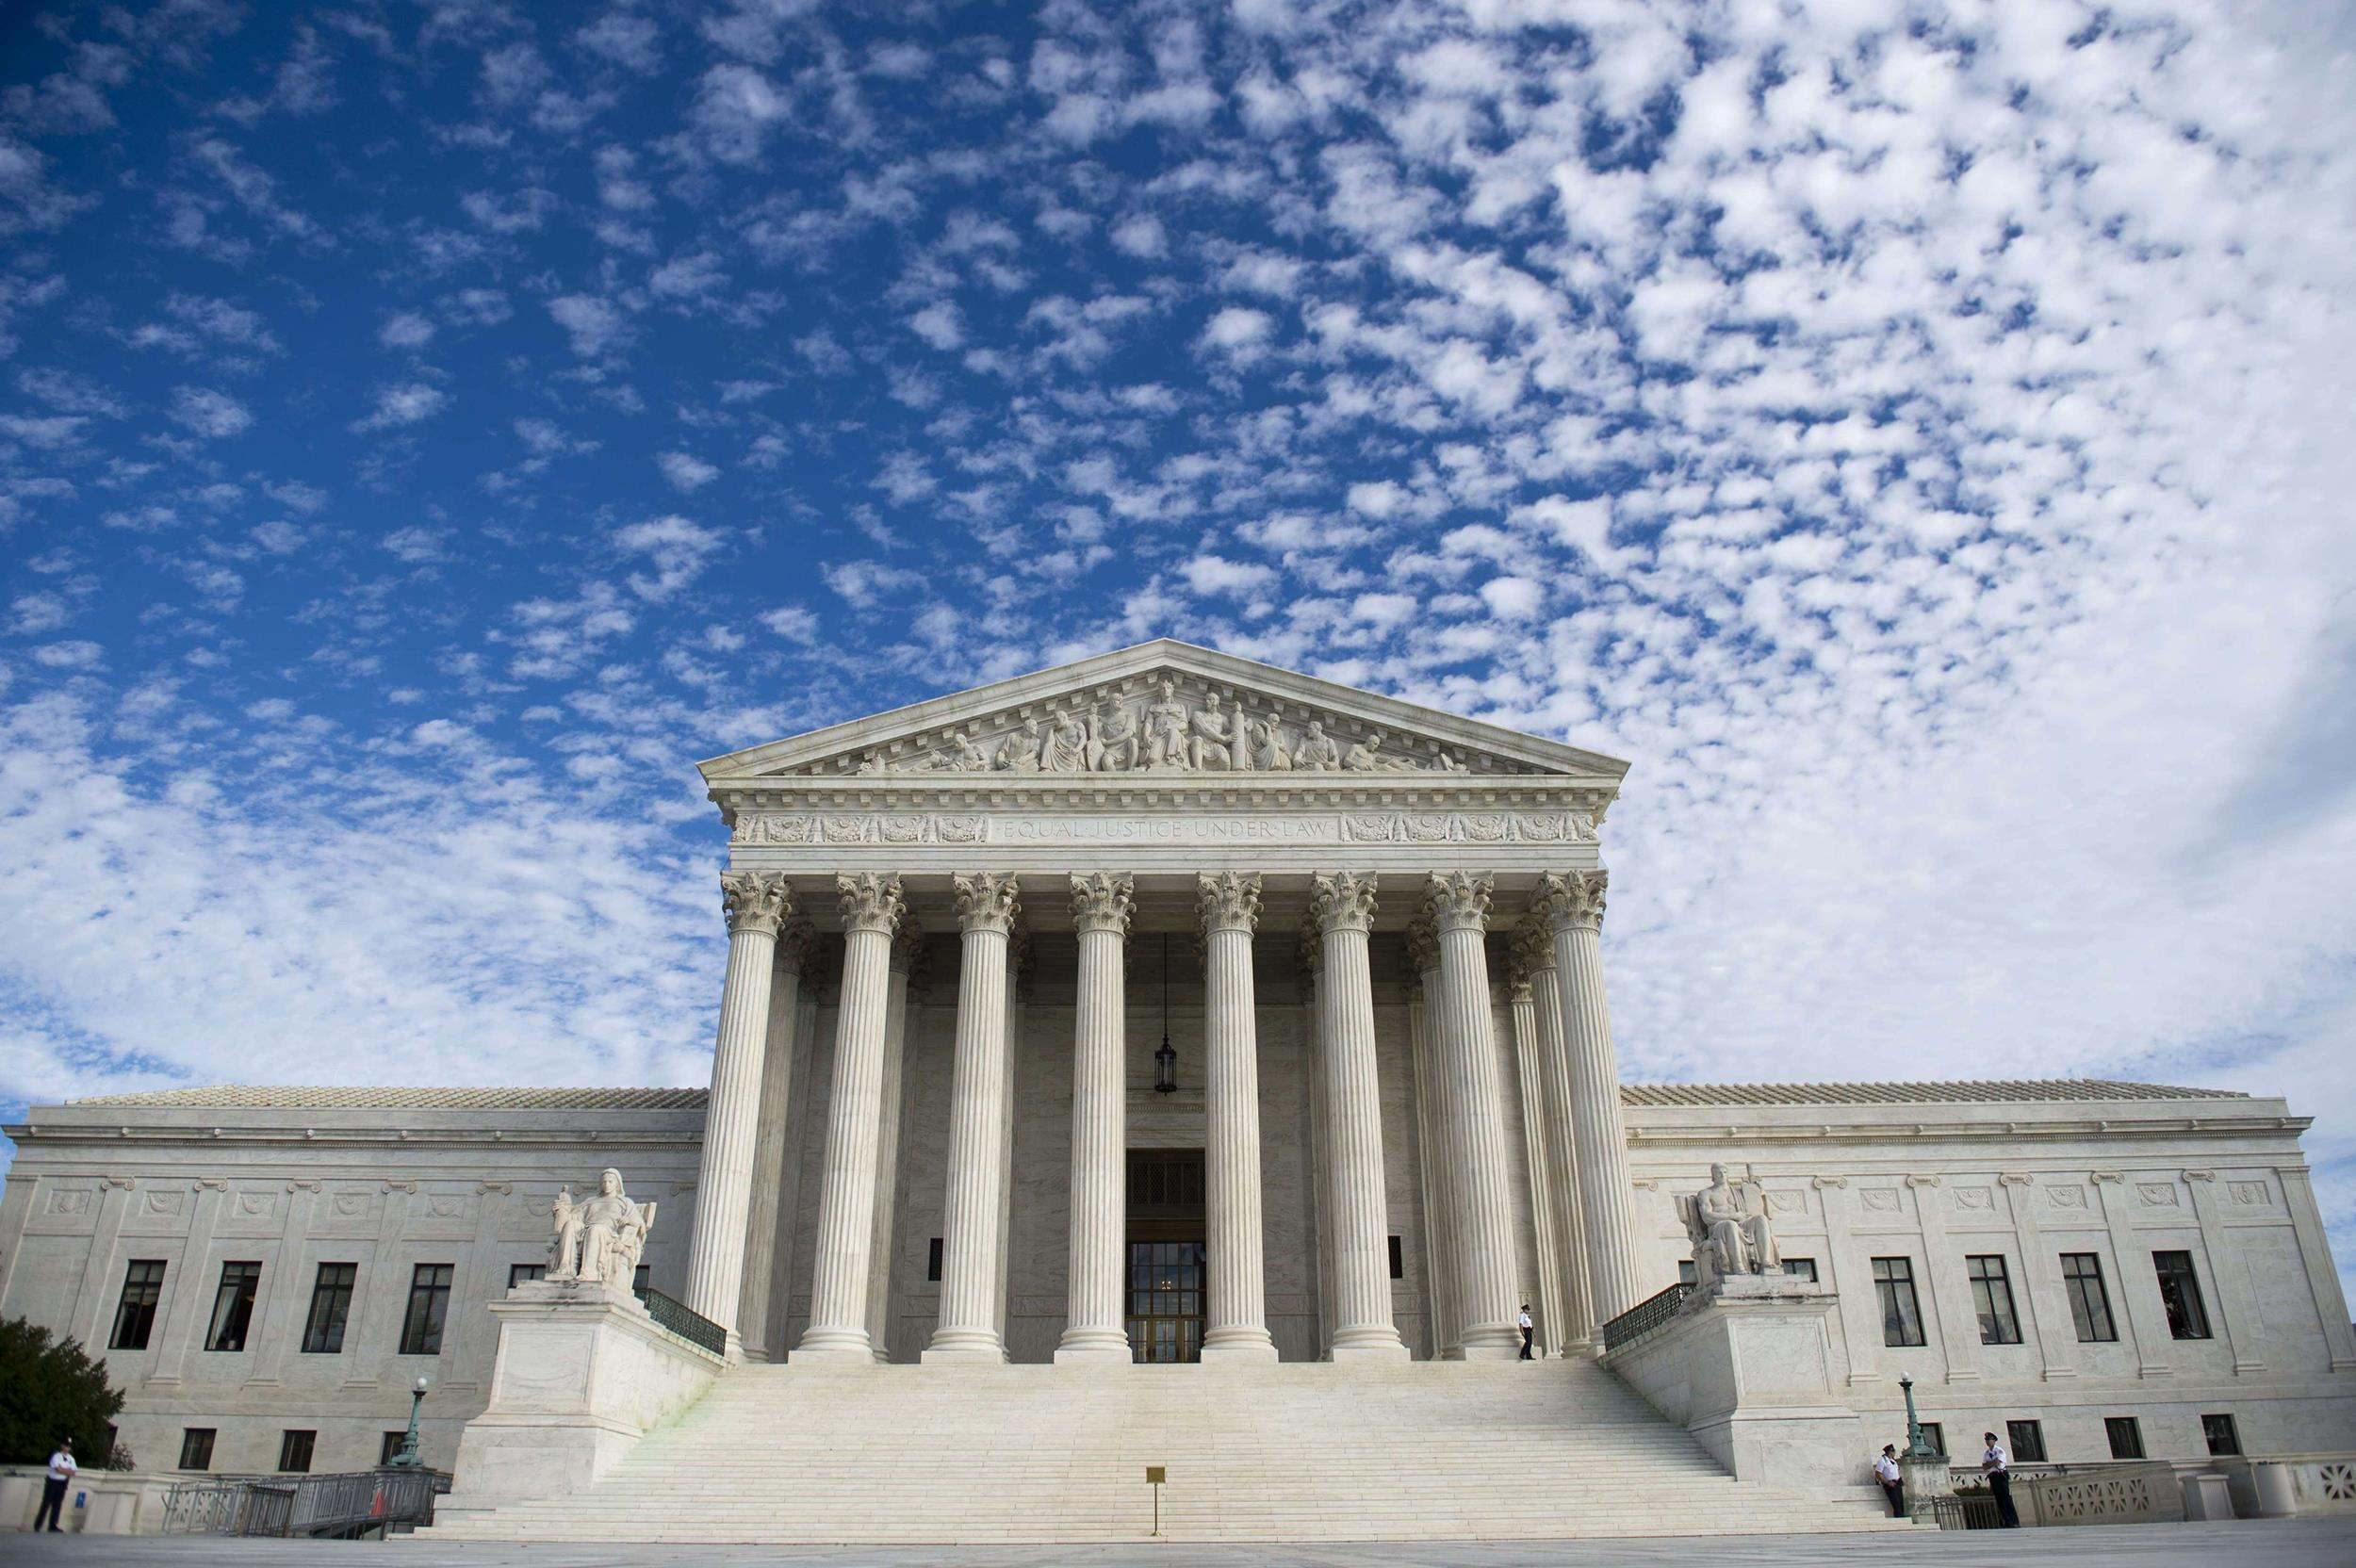 Image: The U.S. Supreme Court in Washington